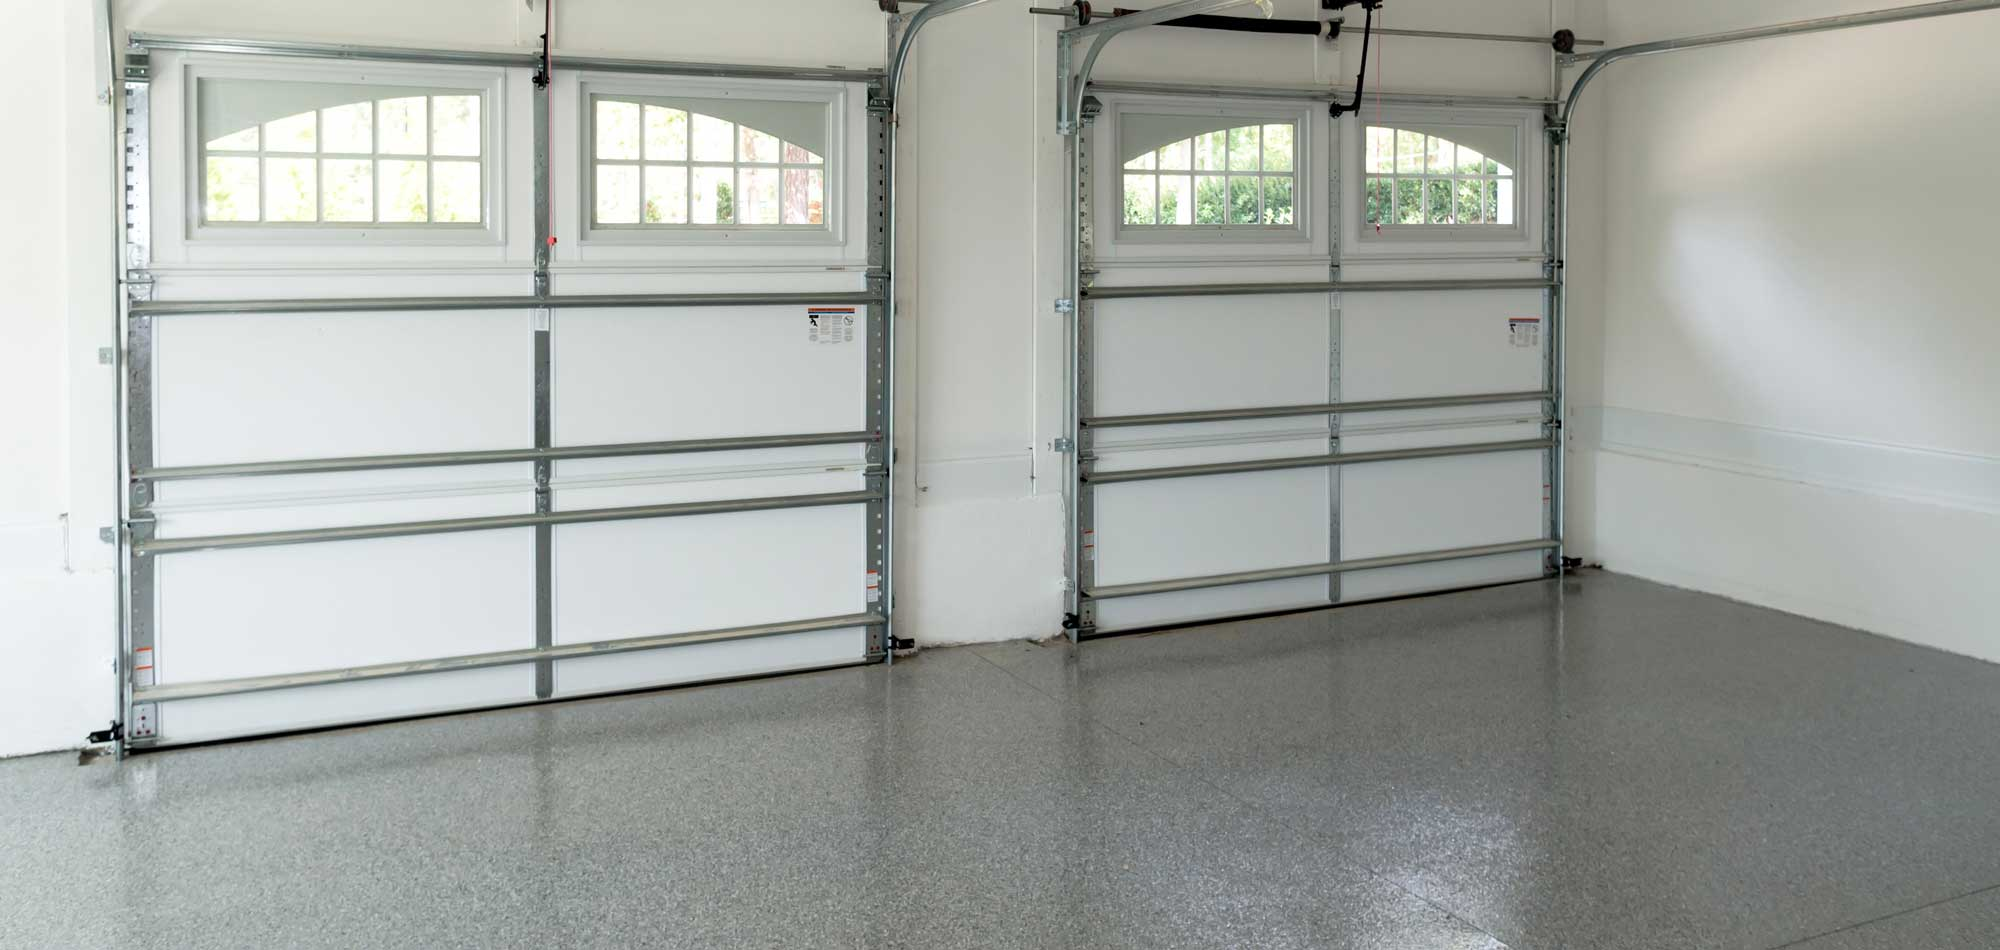 Garage Floor Epoxy Installation Cost 2021 Price Guide